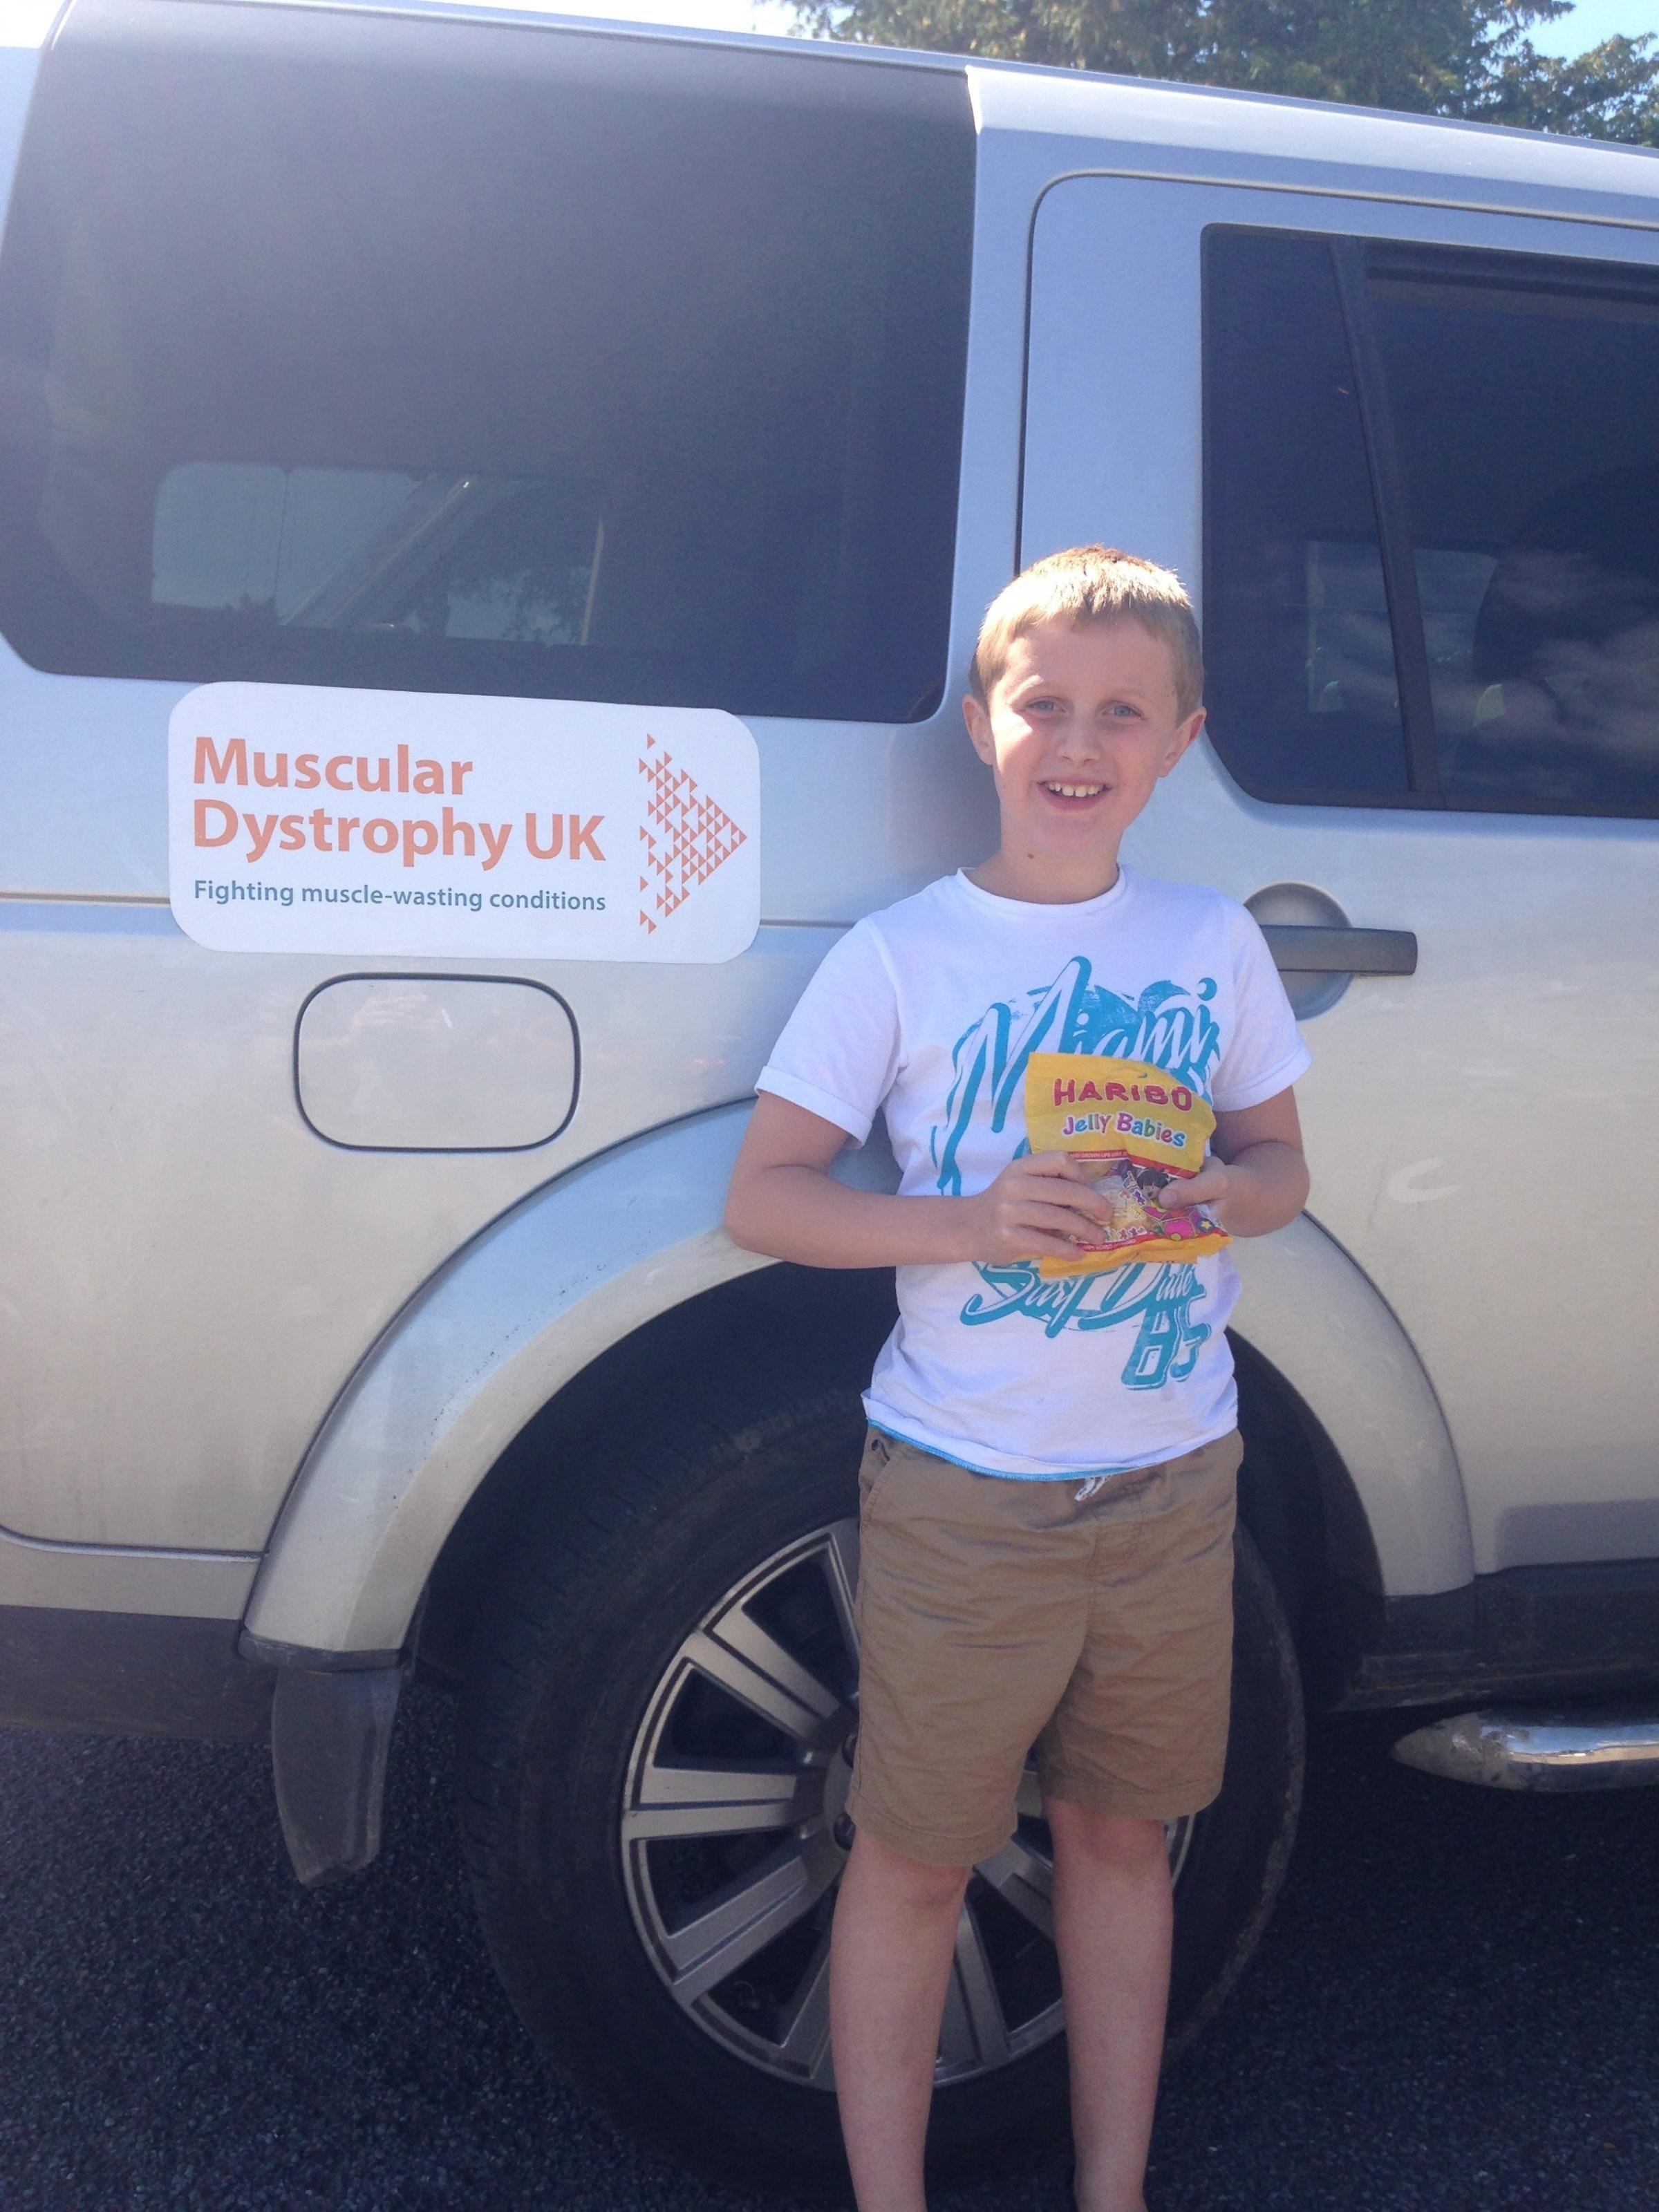 Endmoor schoolboy Will Taylor, who has Duchenne muscular dystrophy and will be joined by many friends at the mini triathlon on Sunday, July 15, 2018